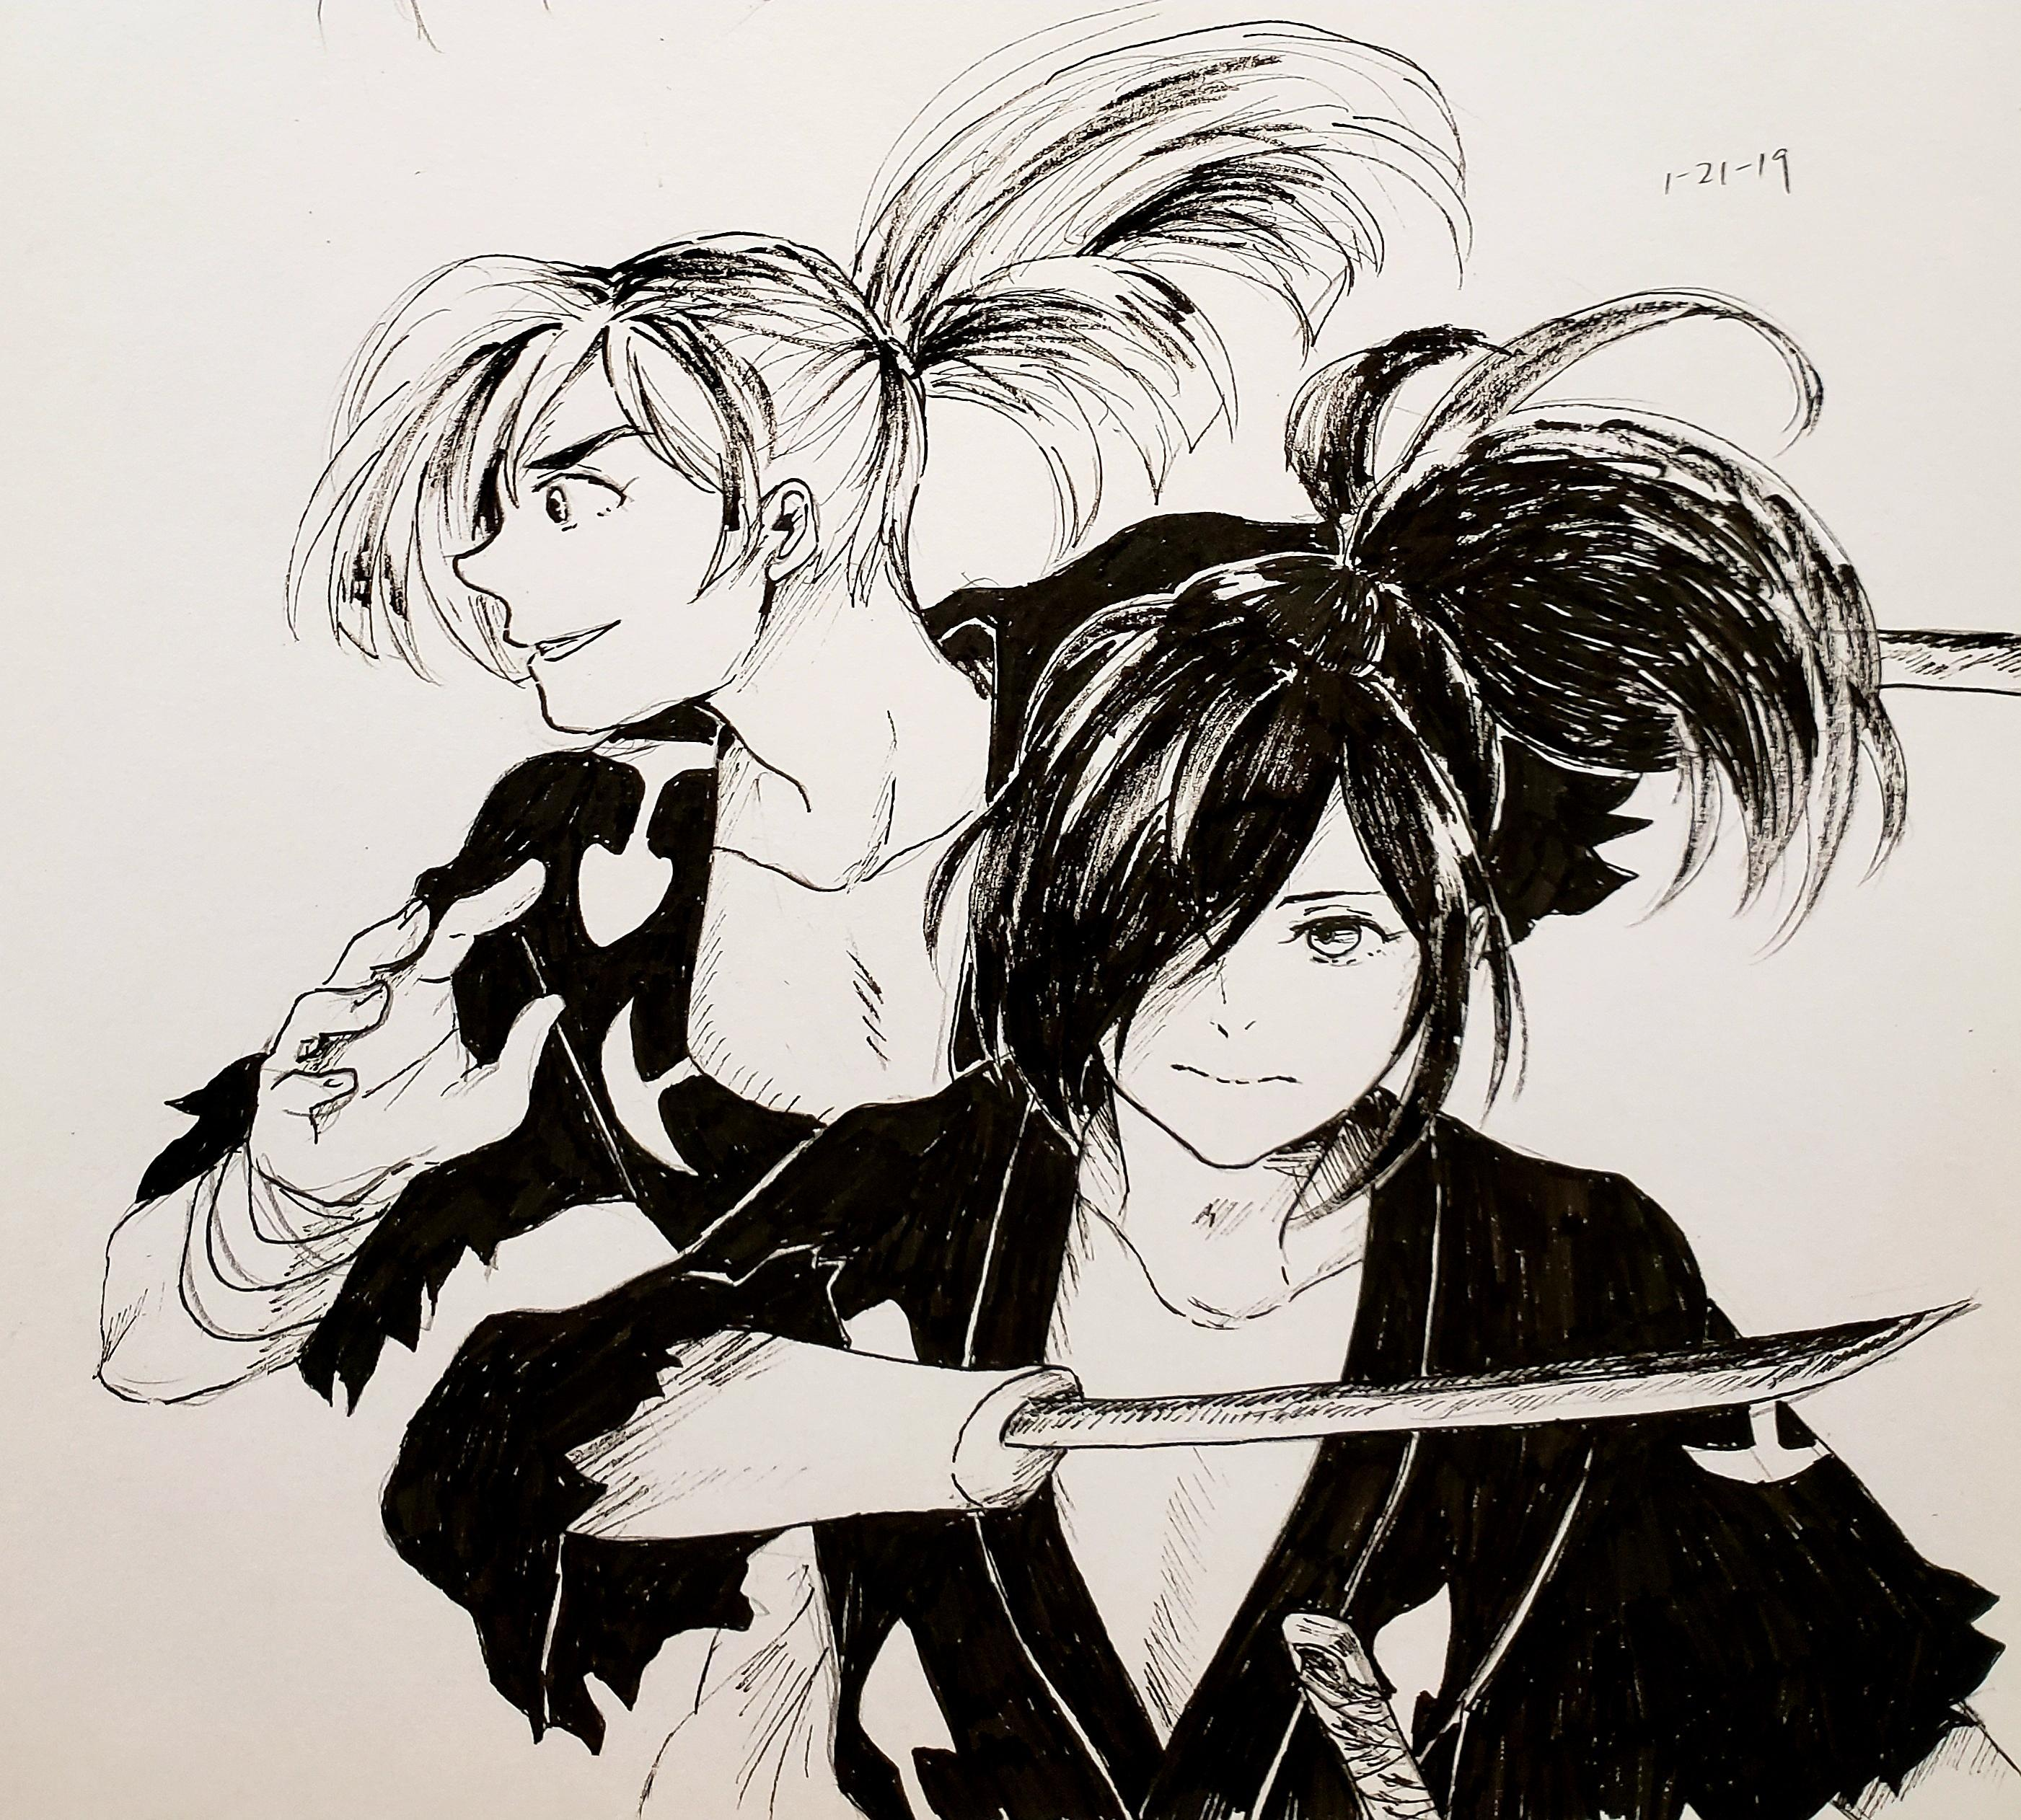 I drew] manga and anime Hyakkimaru : anime